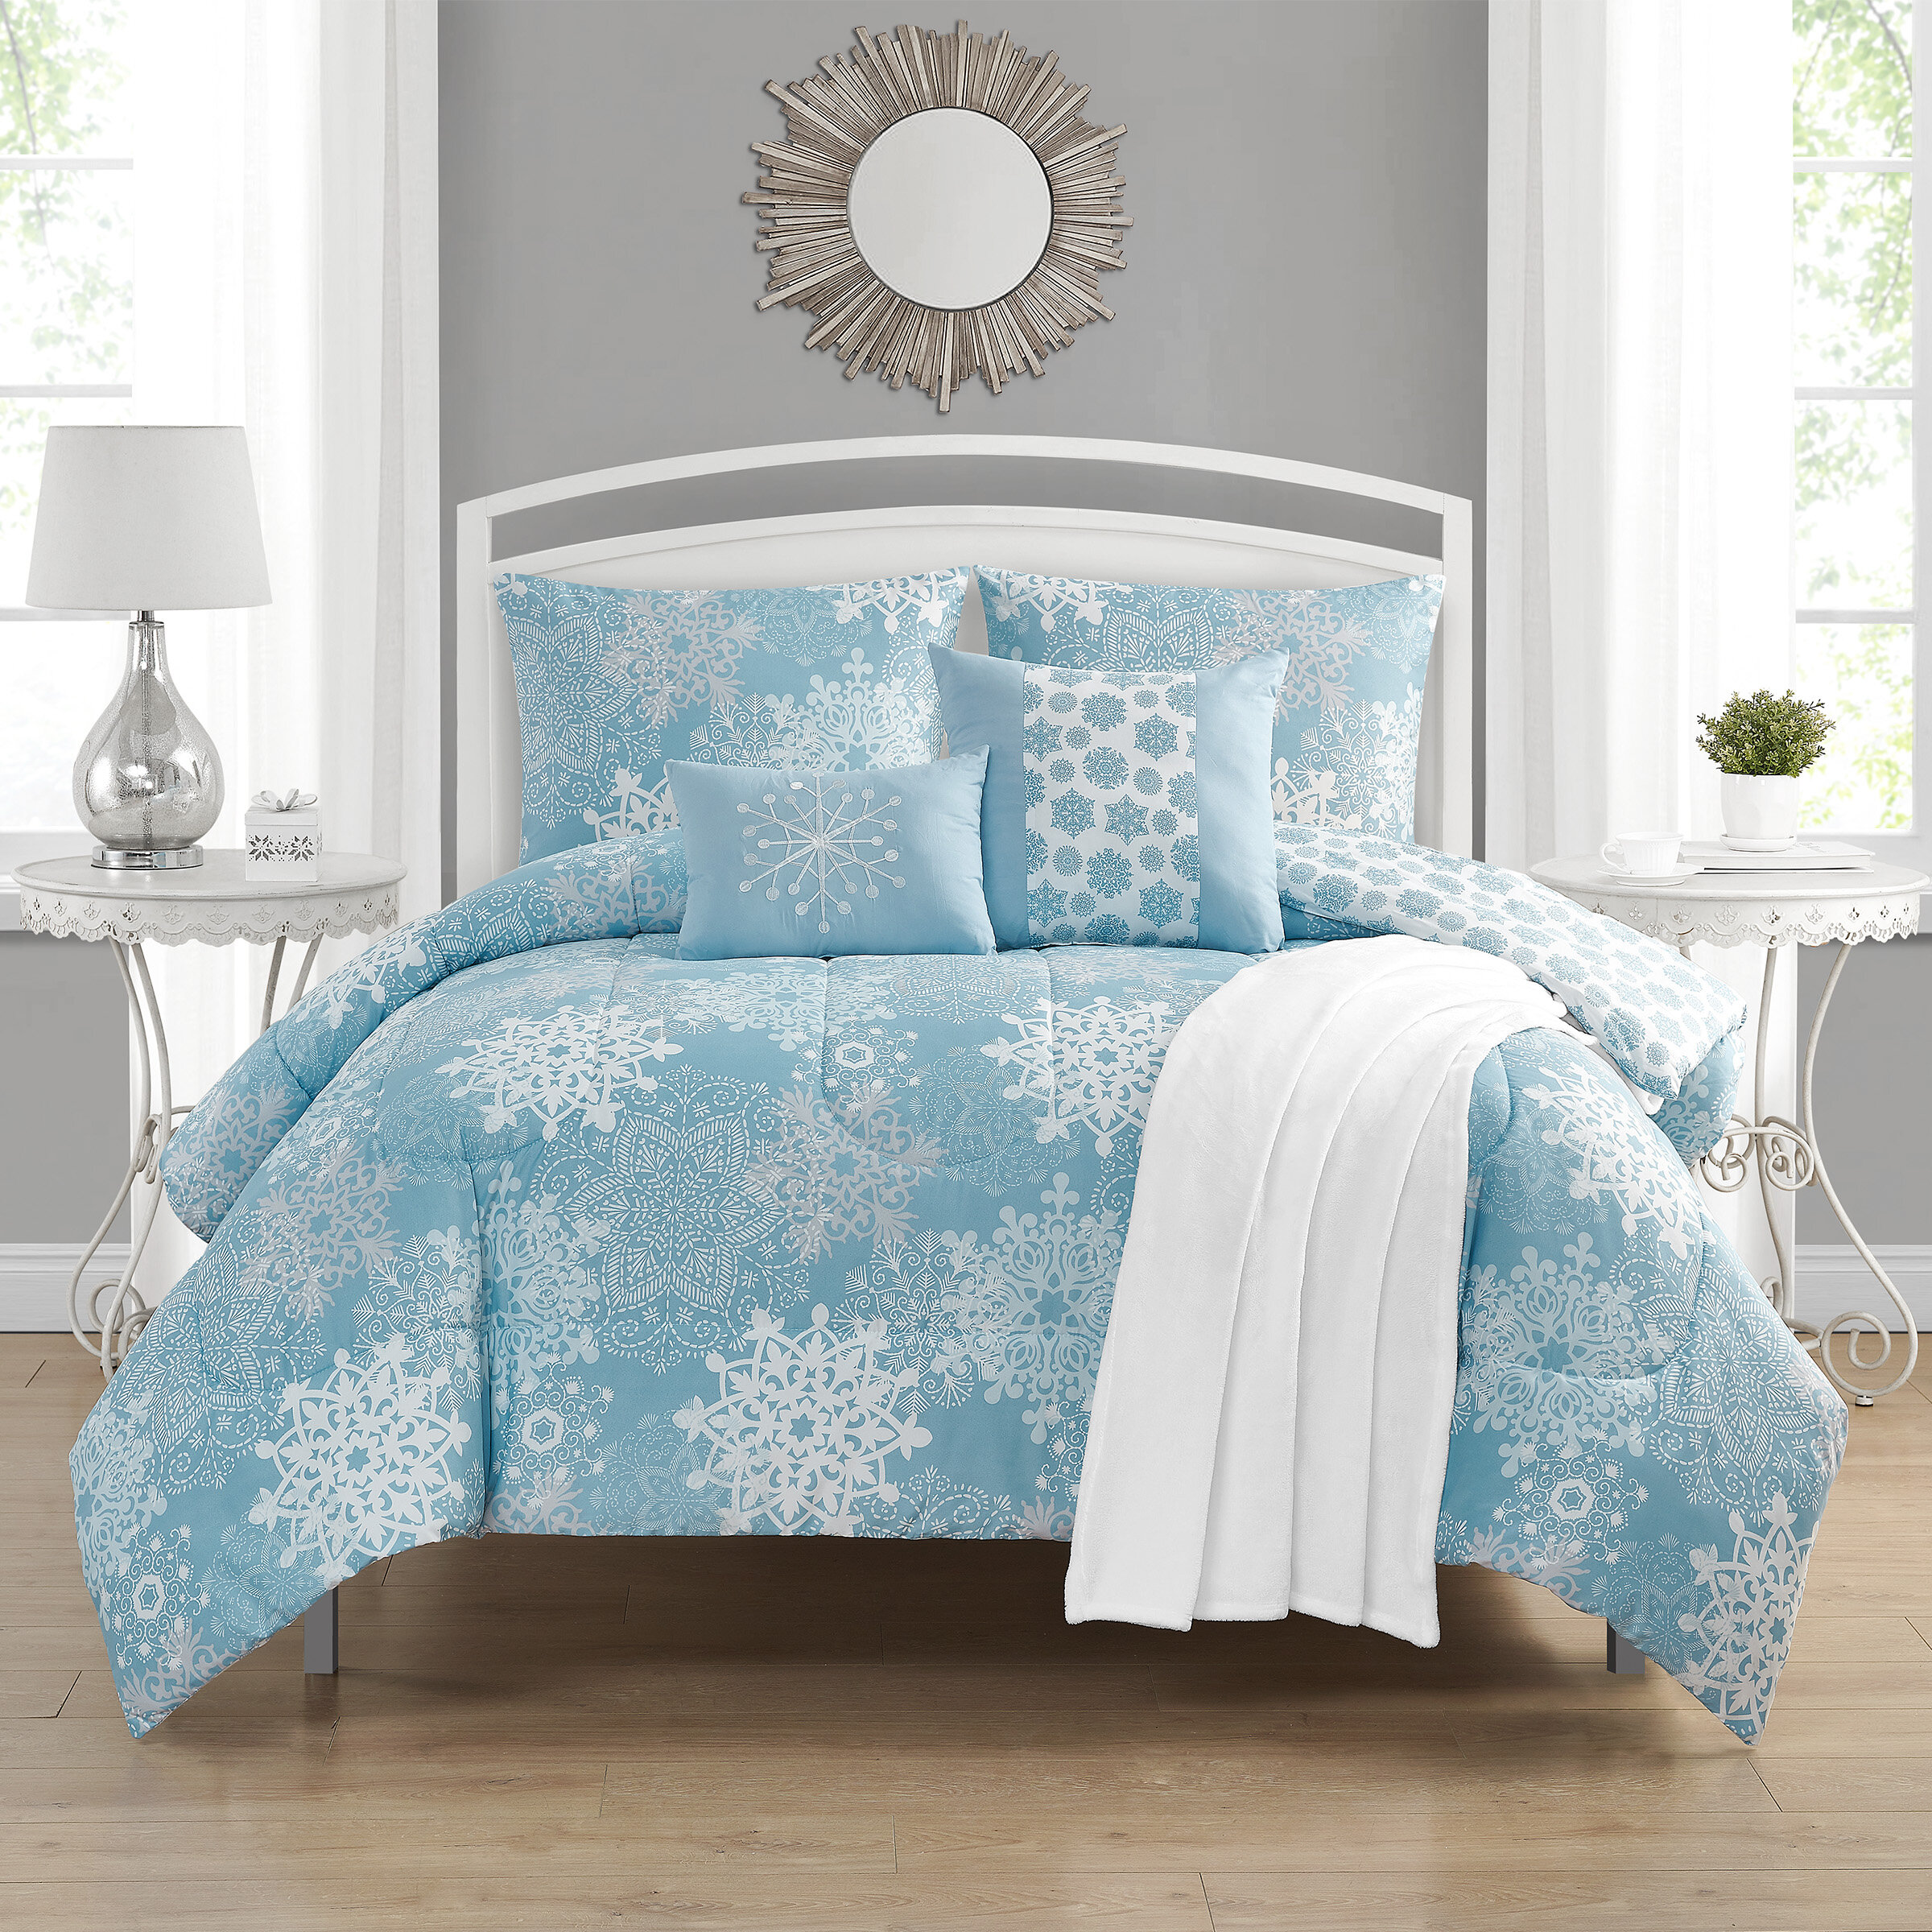 White Millwood Pines Bedding You Ll Love In 2021 Wayfair